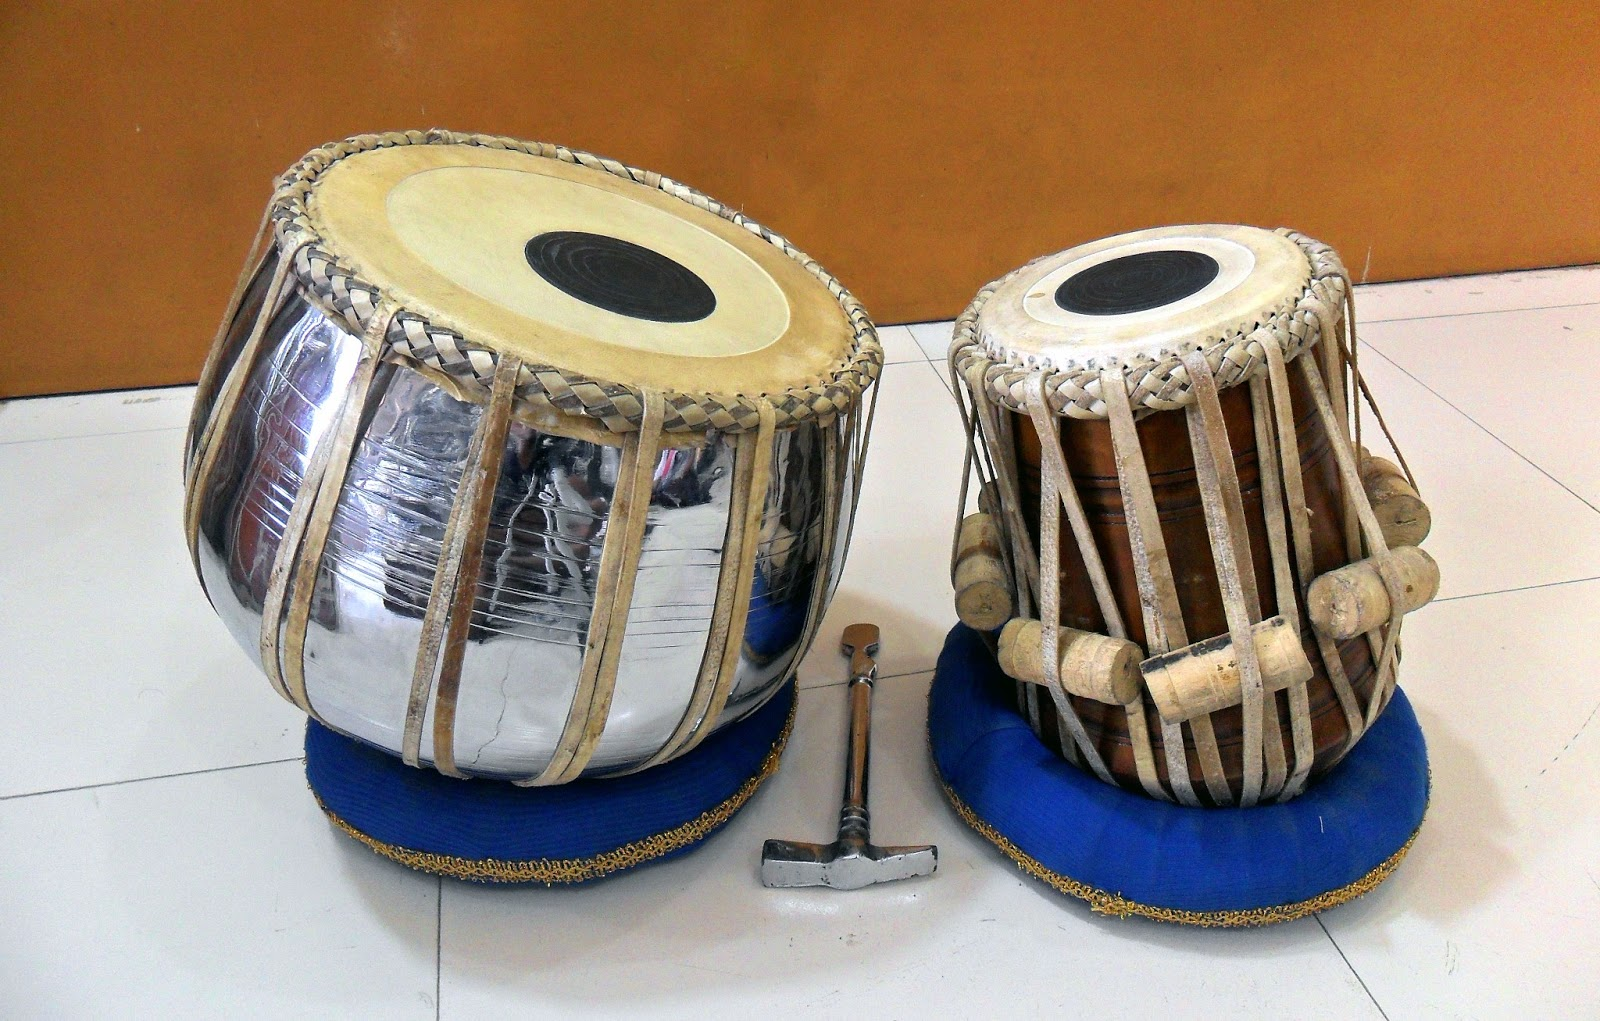 HD Wallpapers Fine: tabla musical instrument hq hd wallpapers free